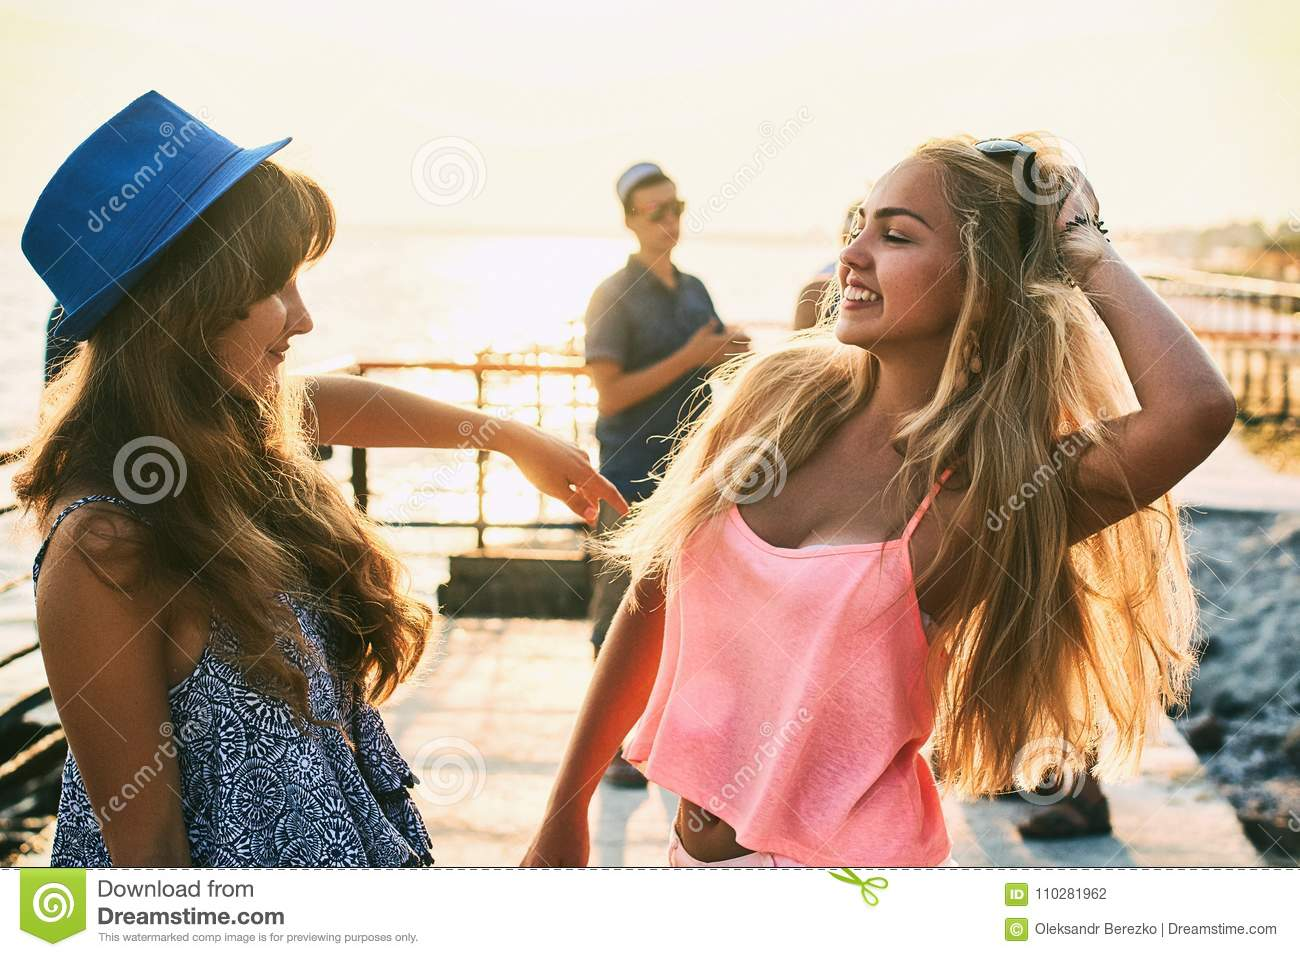 Two beautiful young girls having fun at the evening seaside with group of their friends on background